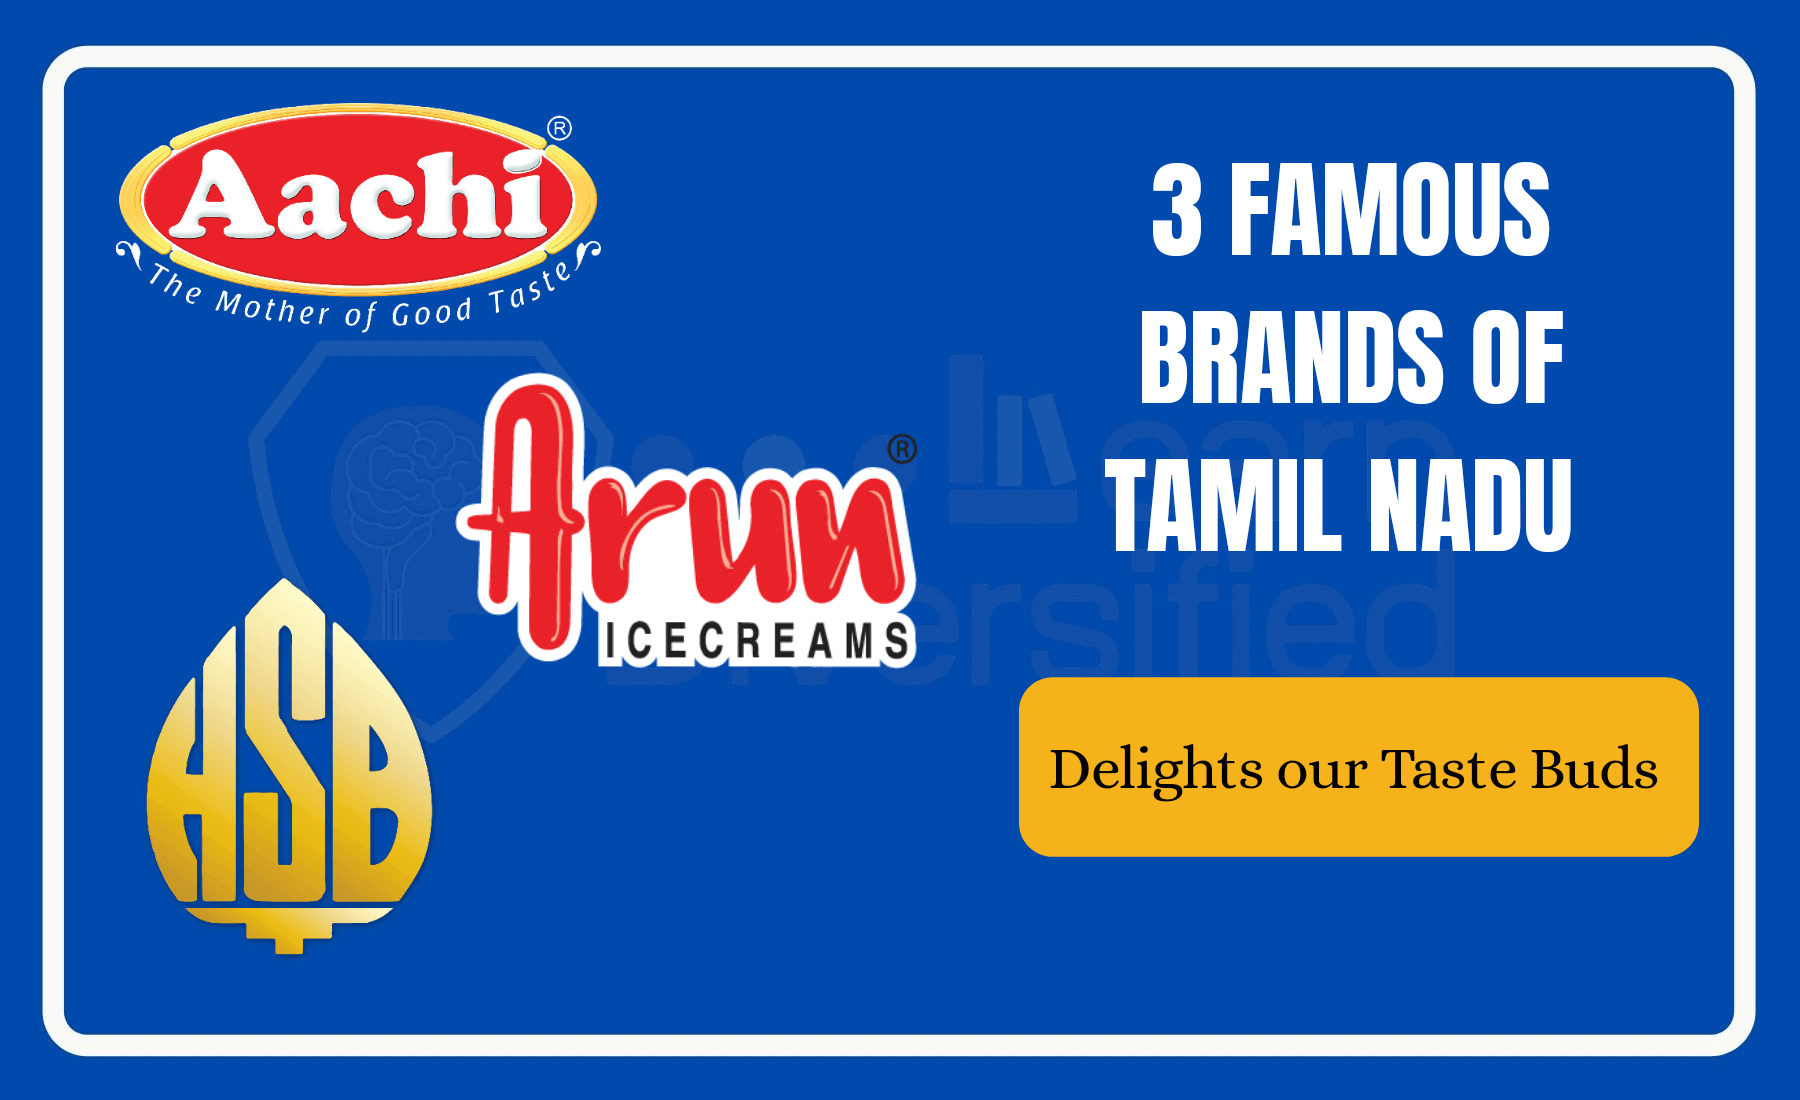 Famous brands of Tamil Nadu